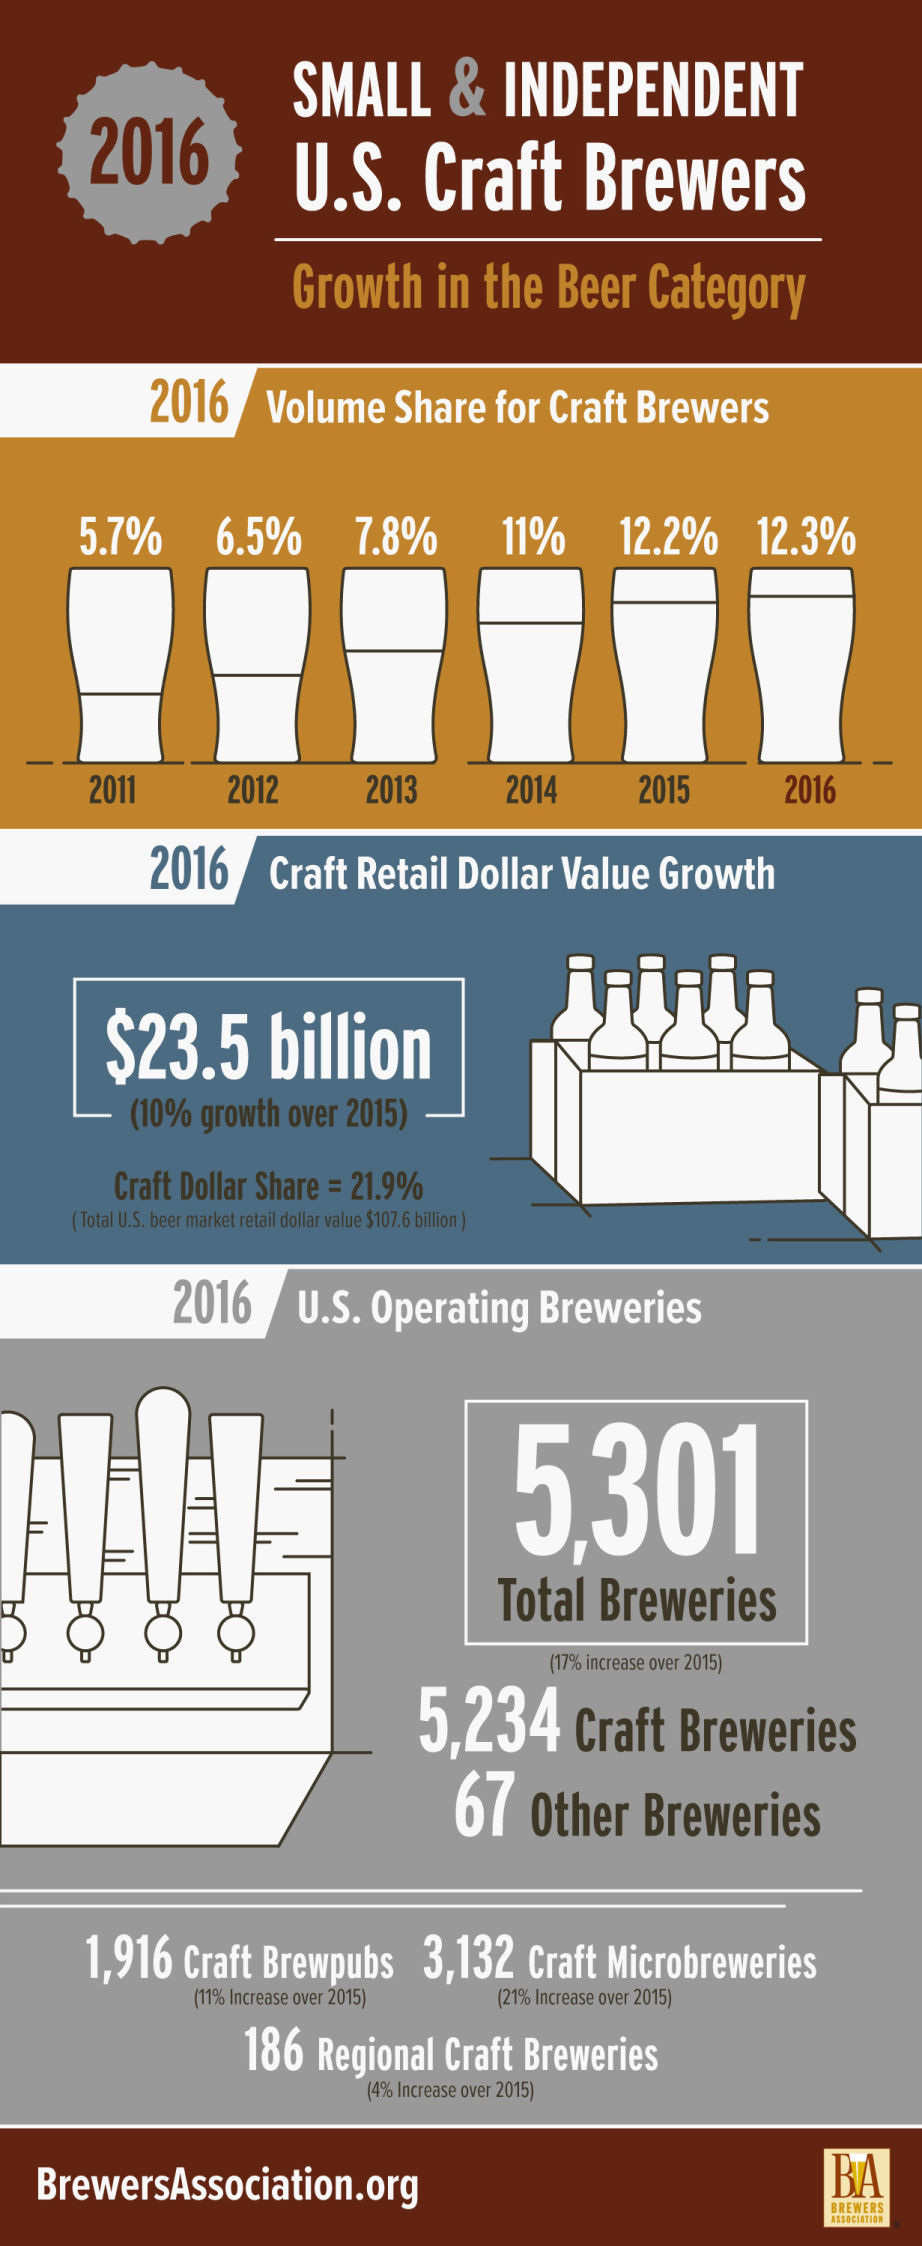 Brew craft sees 10 dollar sales growth in 2016 on flat for Craft beer market share 2017